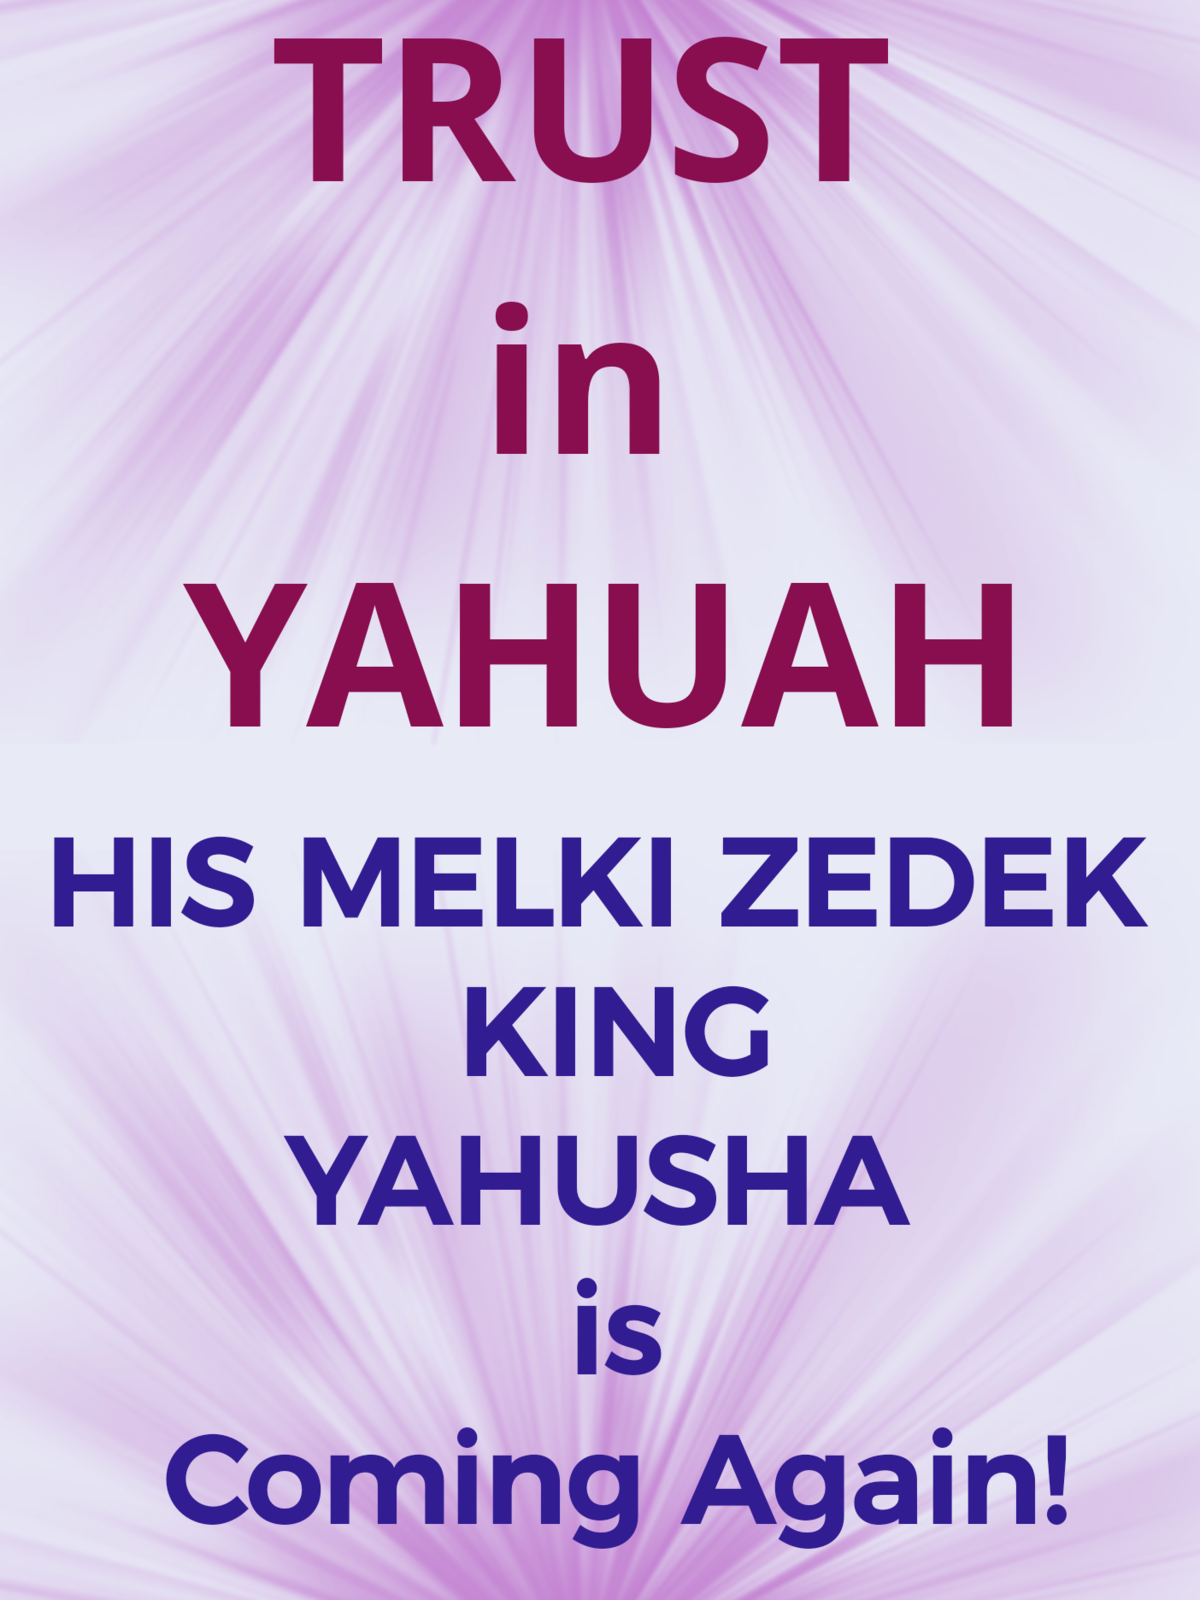 TRUST in YAHUAH...HIS MELKI ZEDEK KING YAHUSHA is COMING AGAIN!